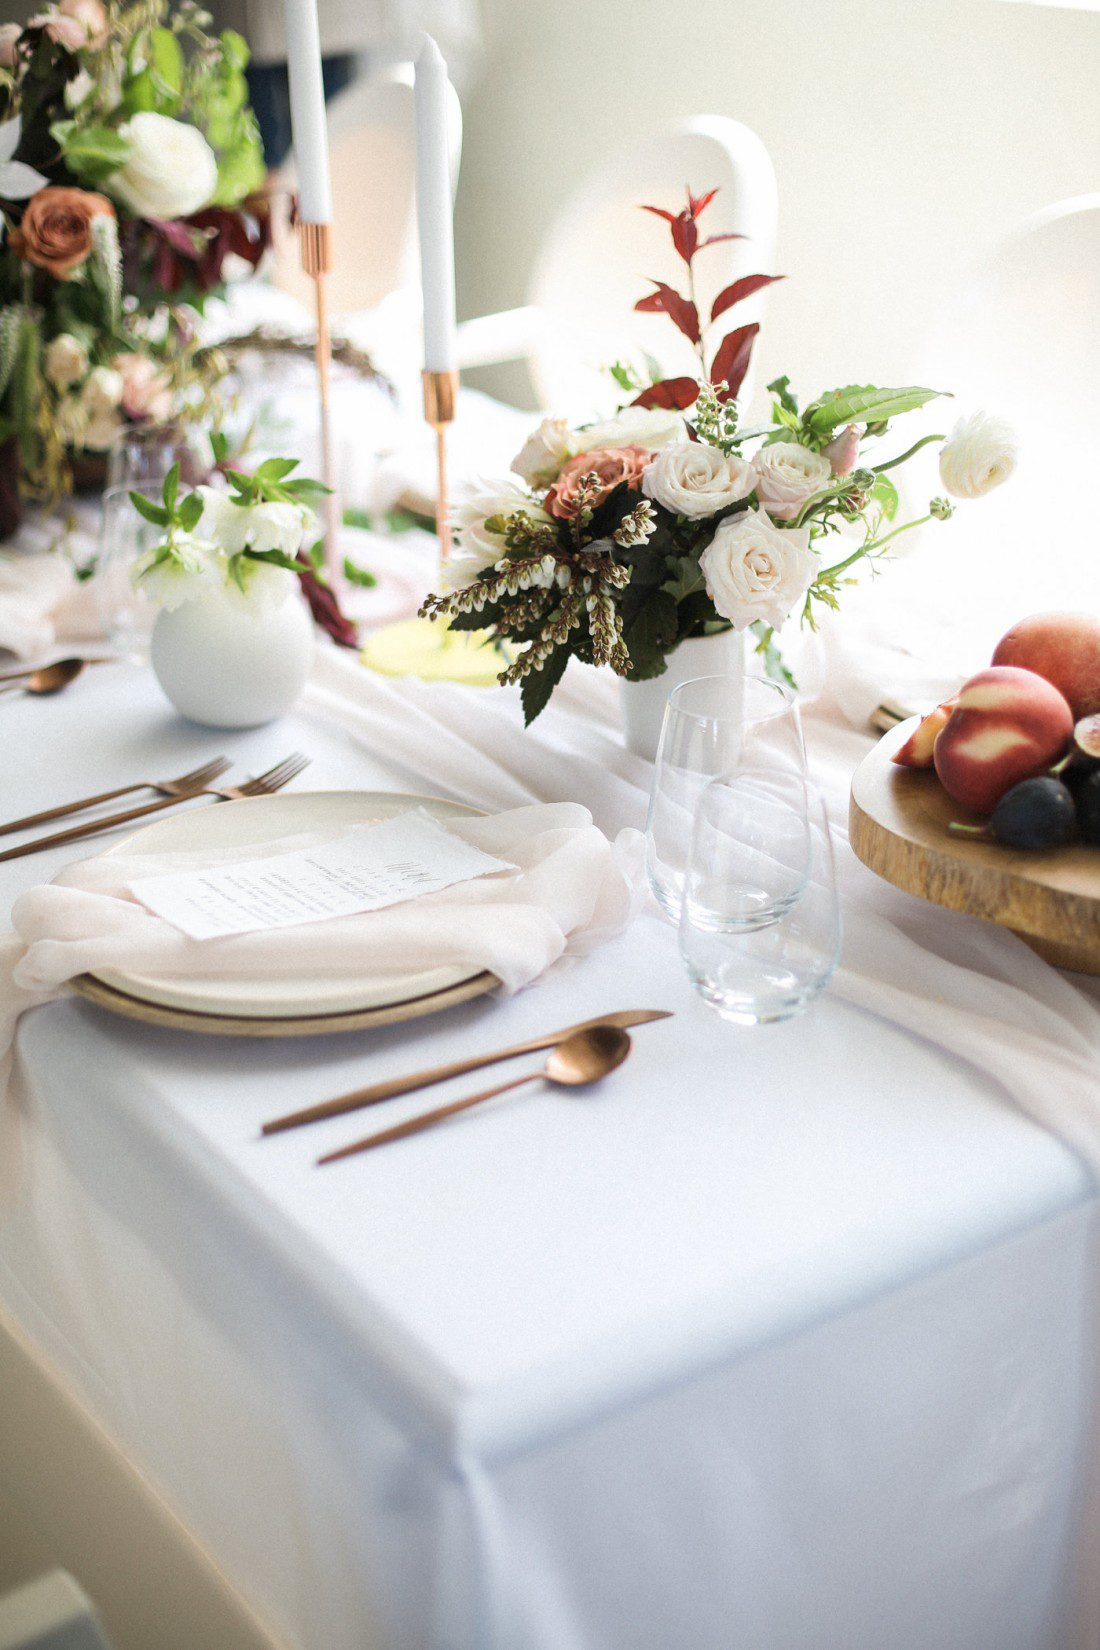 Kansas City Wedding Styled Shoot Winery Flowers Place Setting Gold Flatware